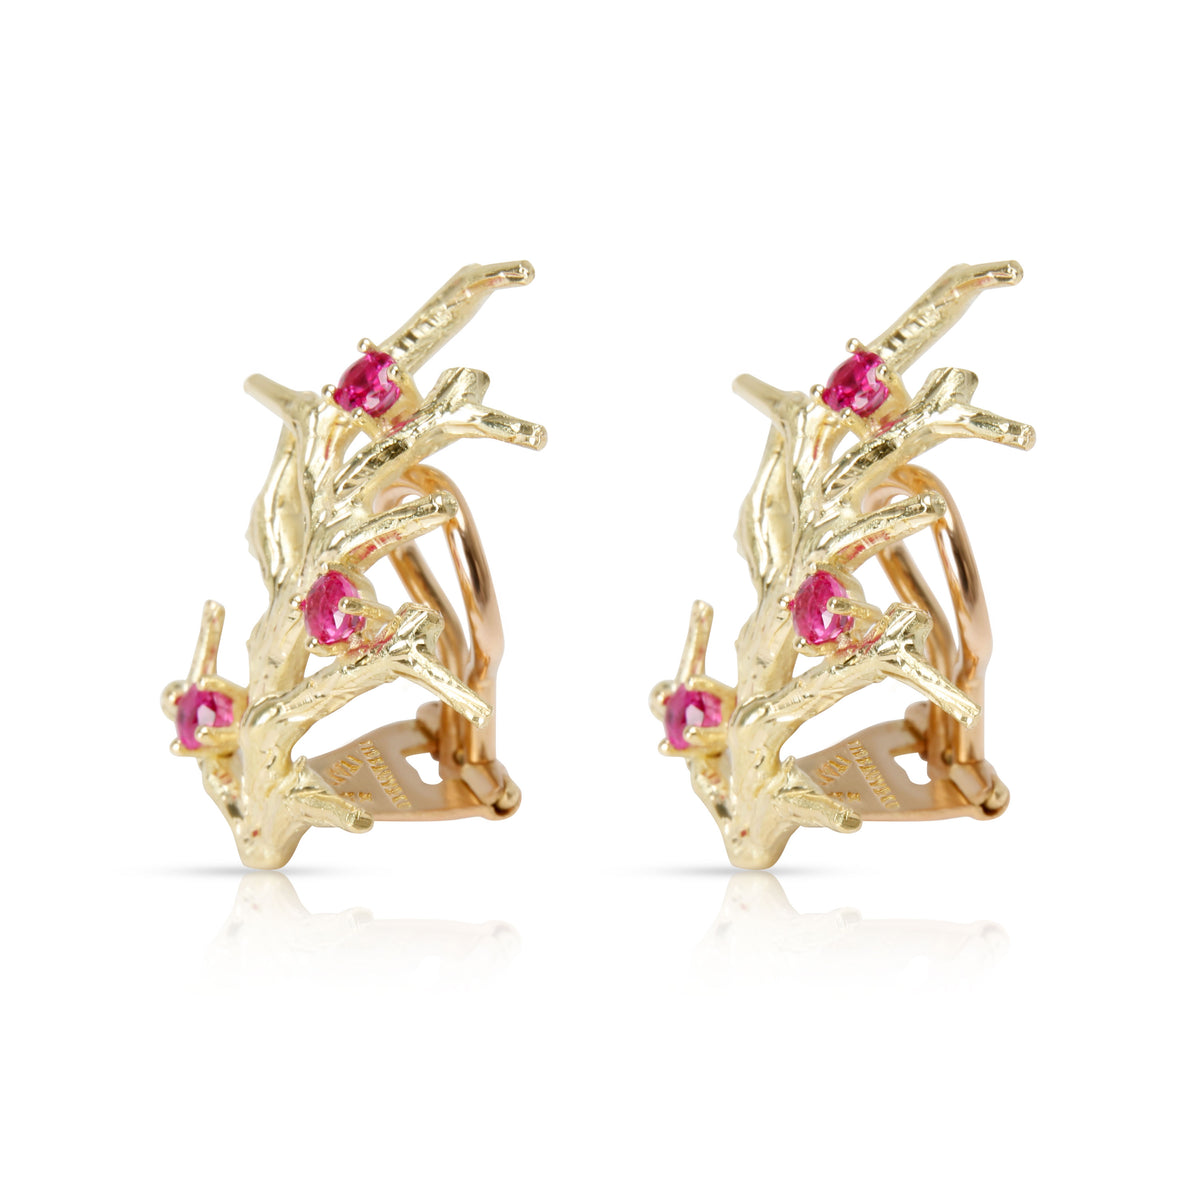 Vintage Tiffany & Co. Coral Pink Sapphire Earrings in 18K Yellow Gold